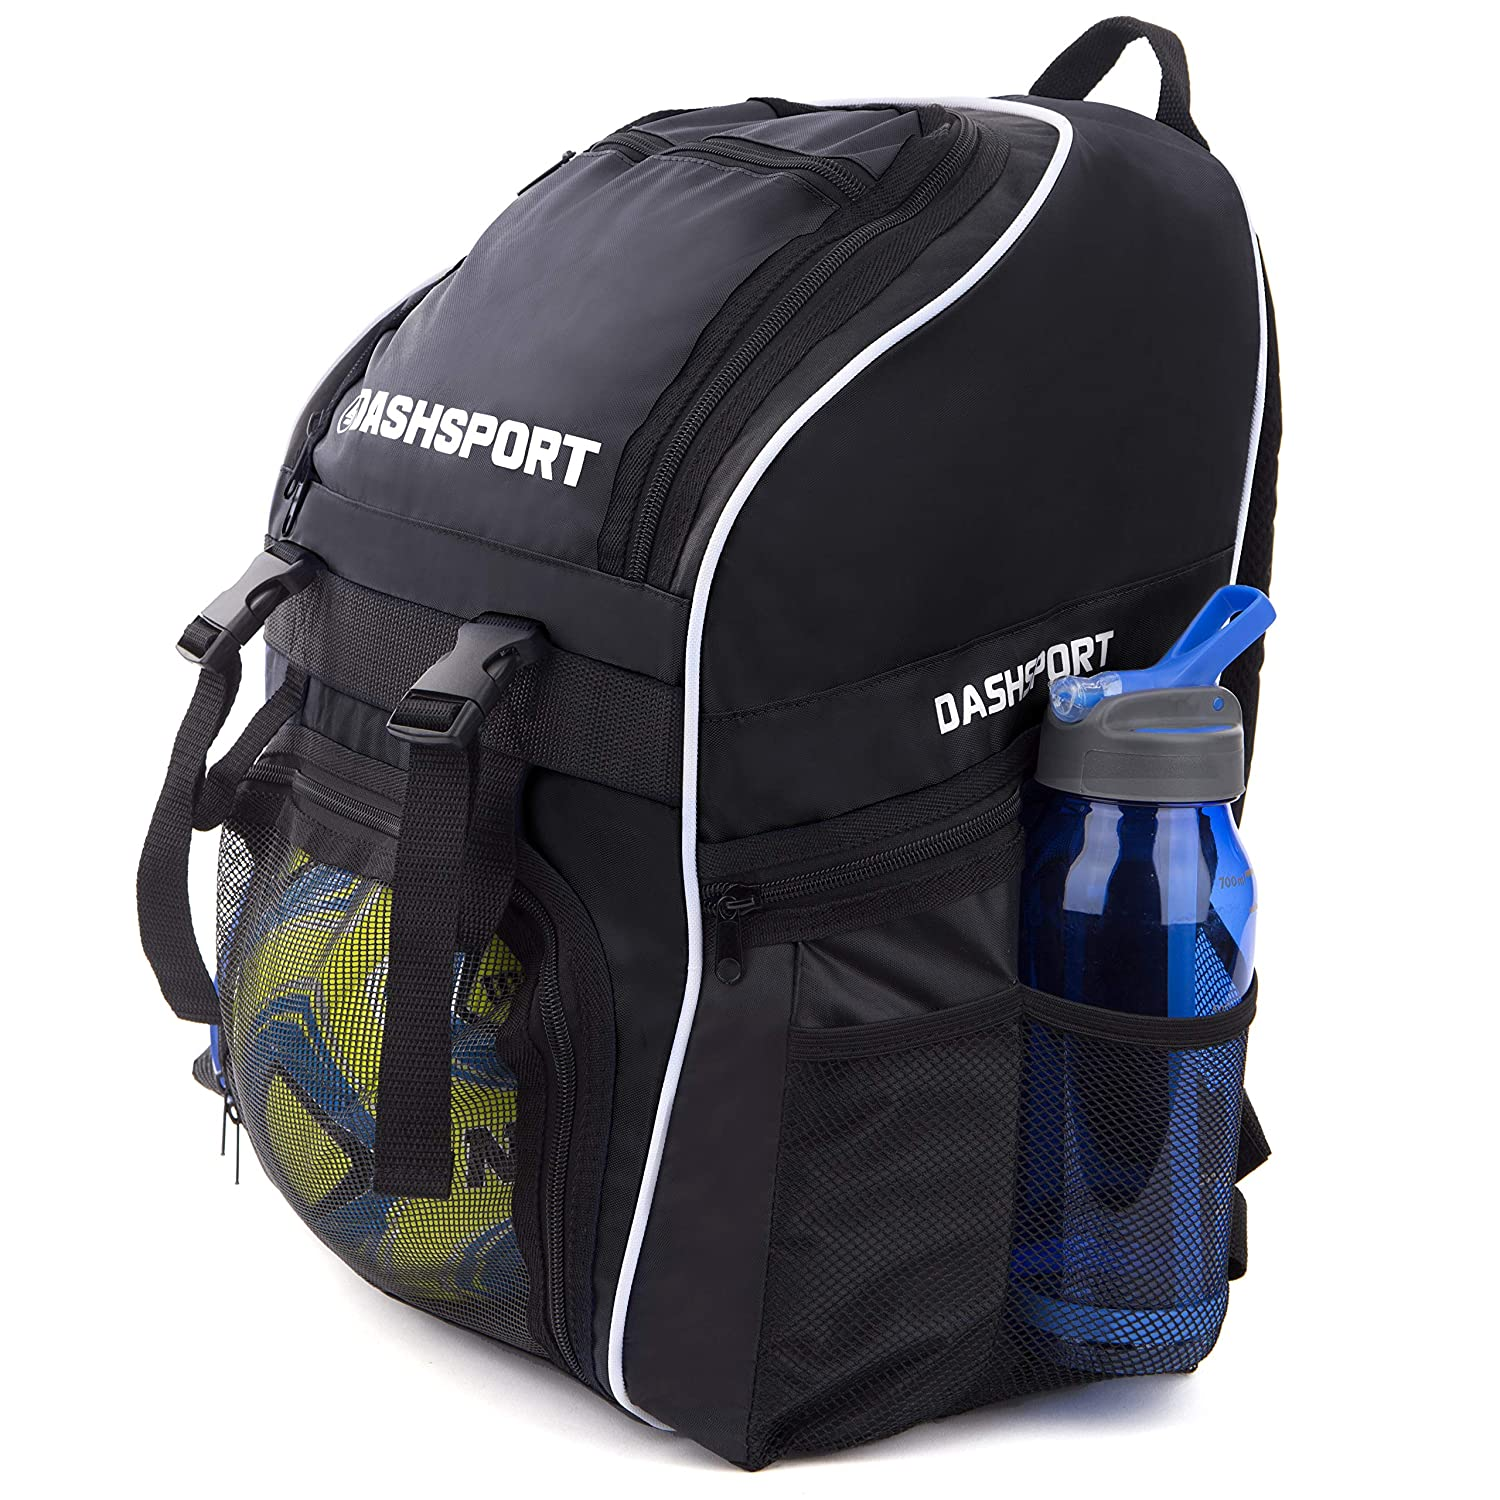 Amazon.com   Soccer Backpack - Basketball Backpack - Youth Kids Ages 6 and  Up - with Ball Compartment - All Sports Bag Gym Tote Soccer Futbol  Basketball ... 057f20a401c8e